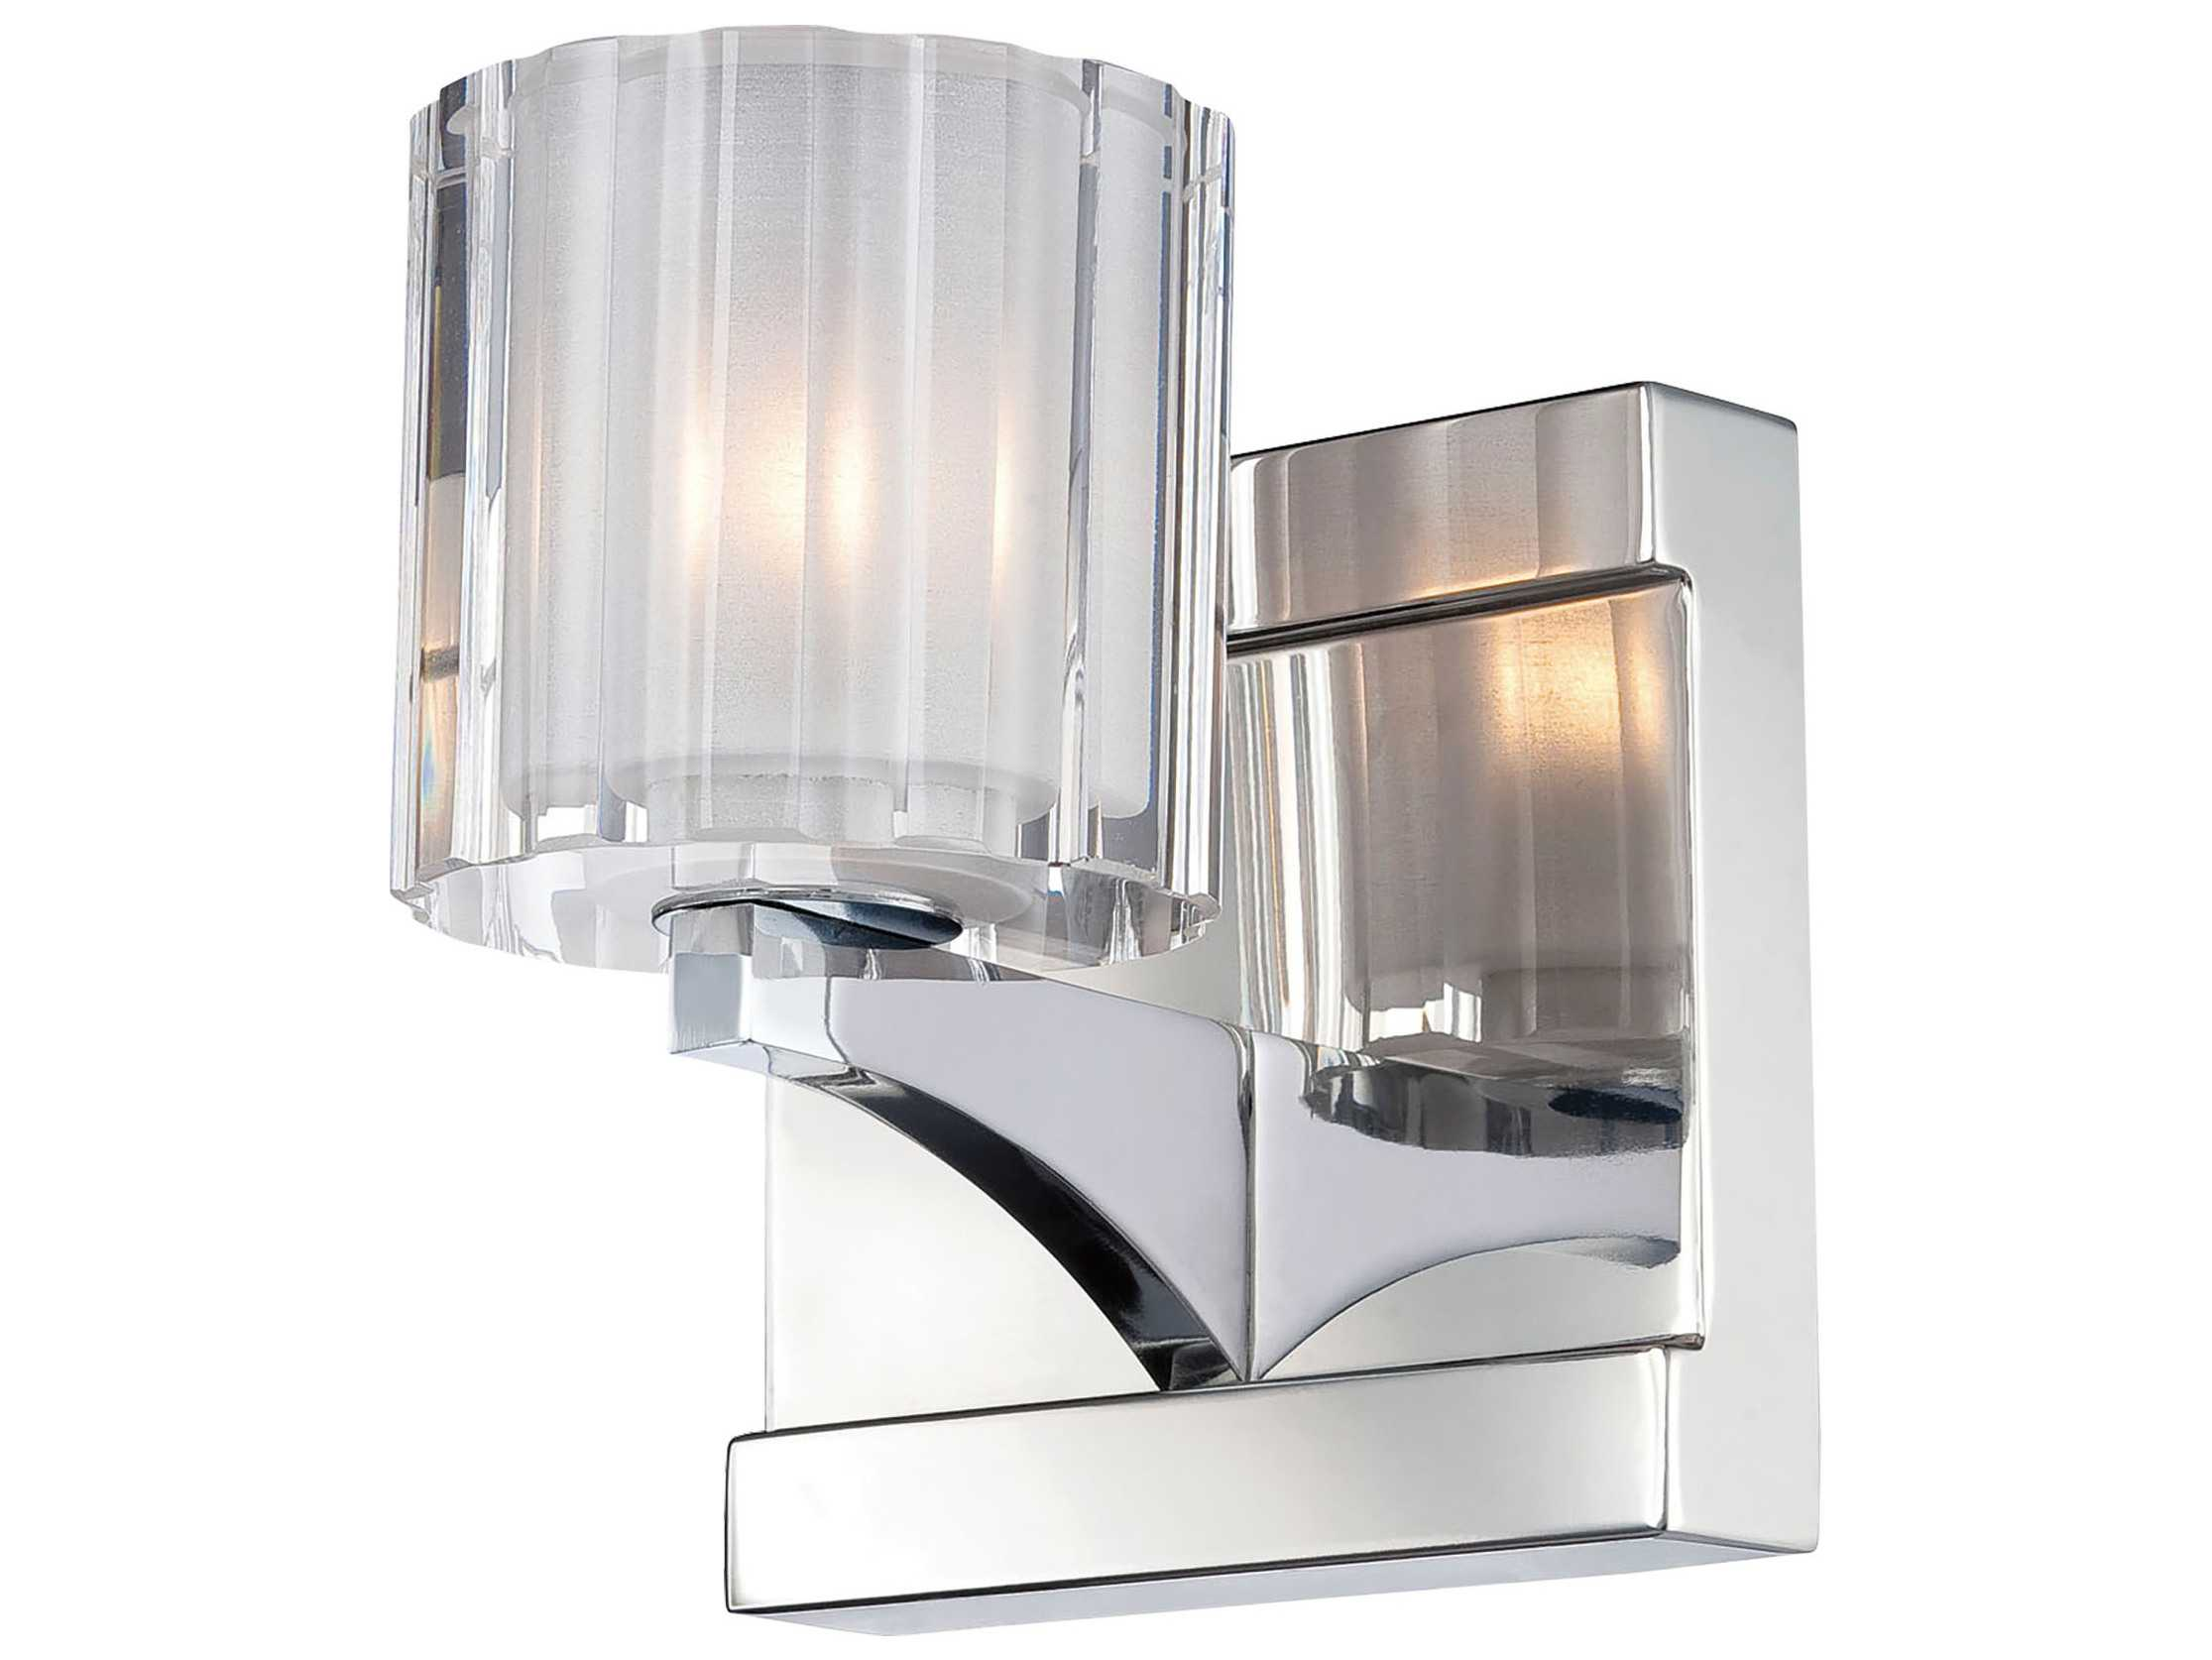 Alico Tiara Chrome & Crystal Glass Vanity Light ALCBV3001015